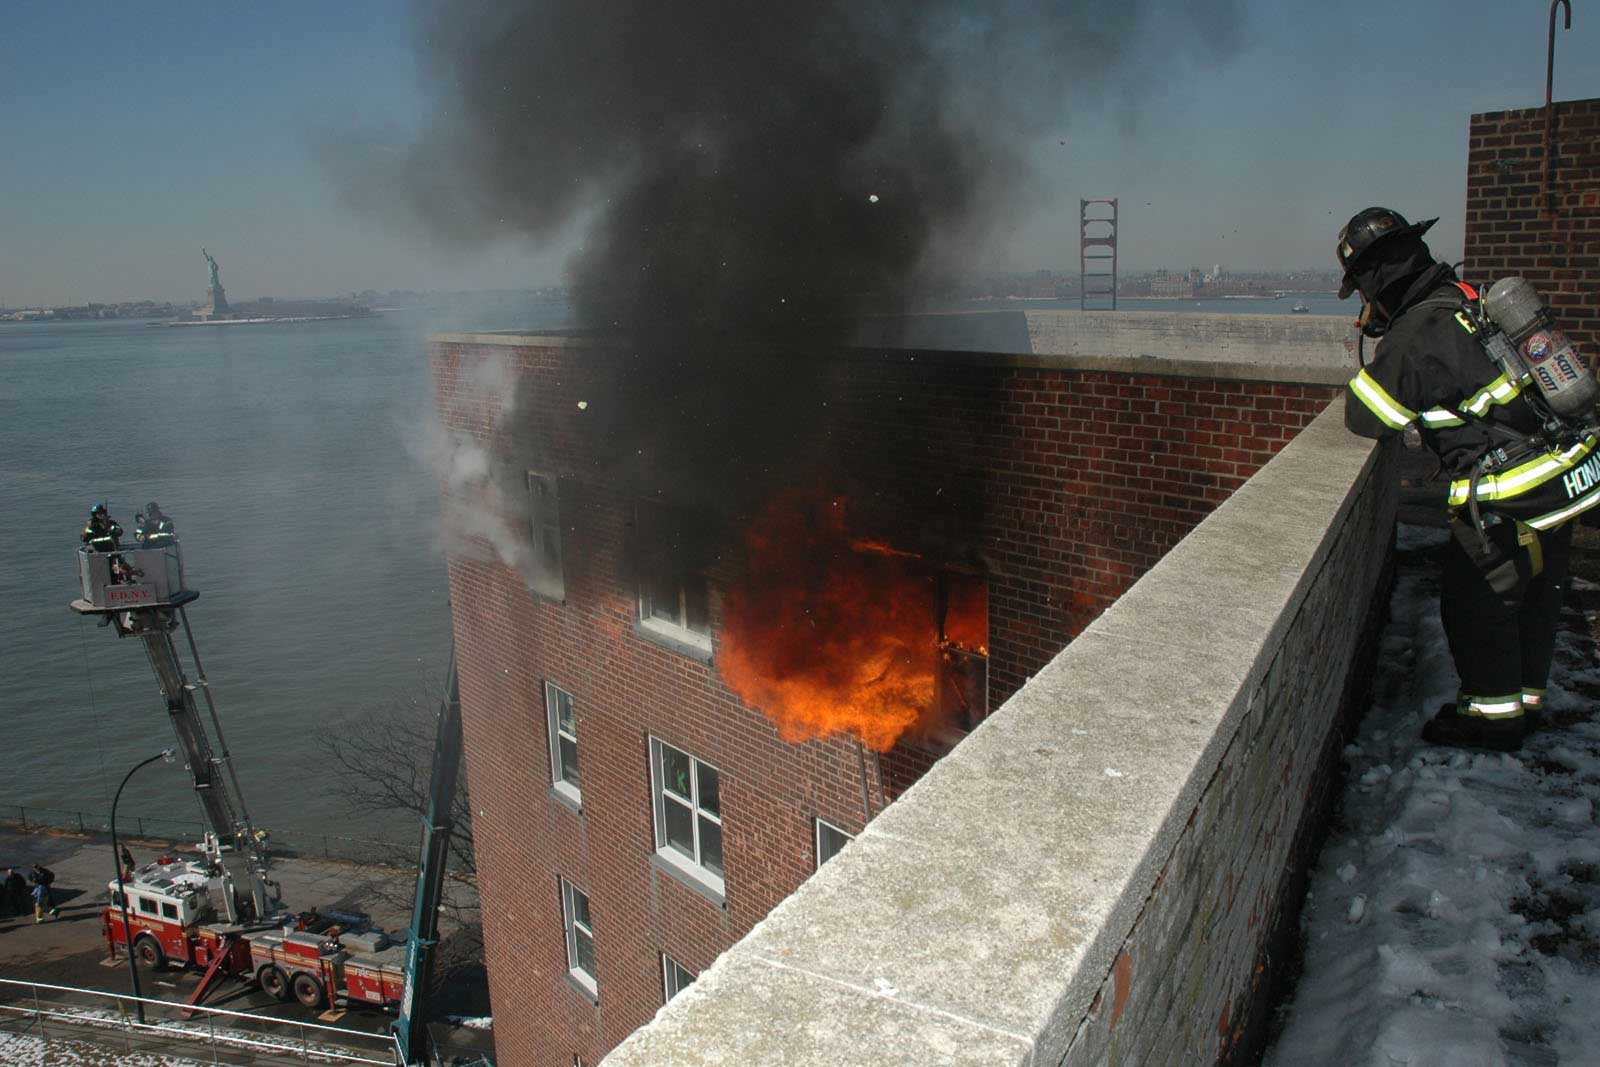 FDNY firefighter at abandoned apartment building in NYC watching fire and smoke blow out a window